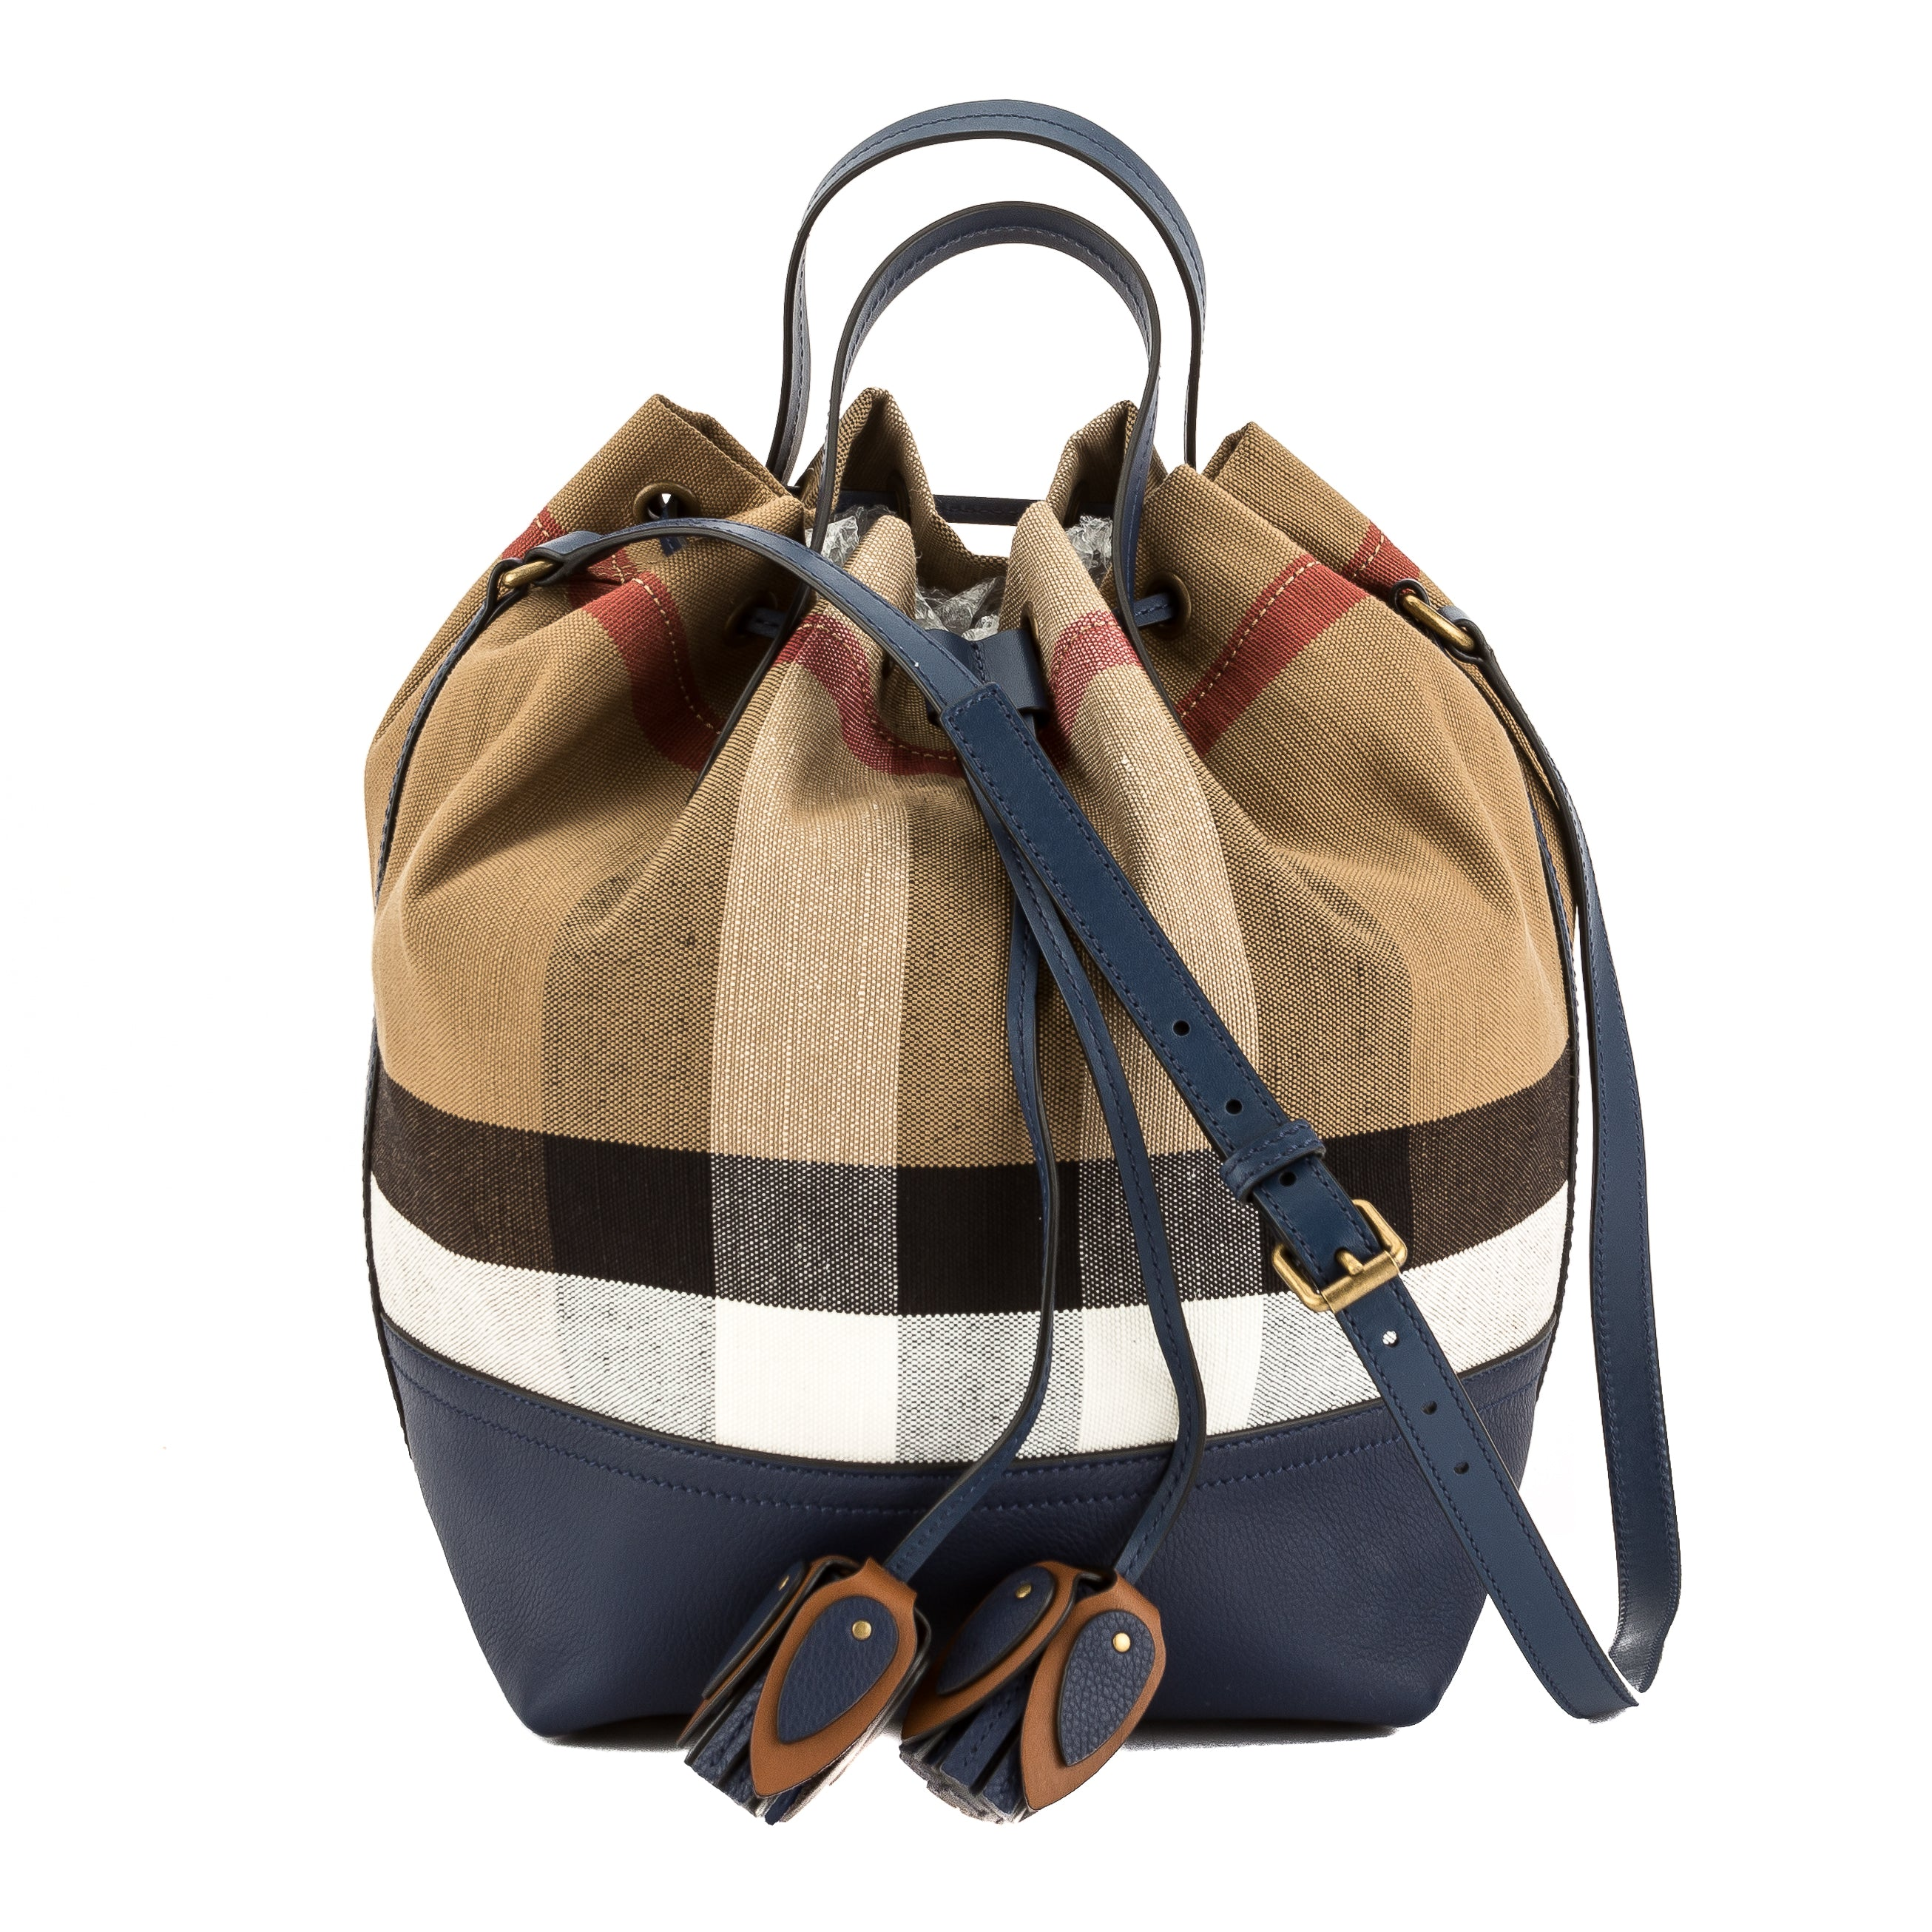 bafa41a93e66 Burberry Brilliant Navy Leather and Canvas Check Small Bucket Bag New with  Tags